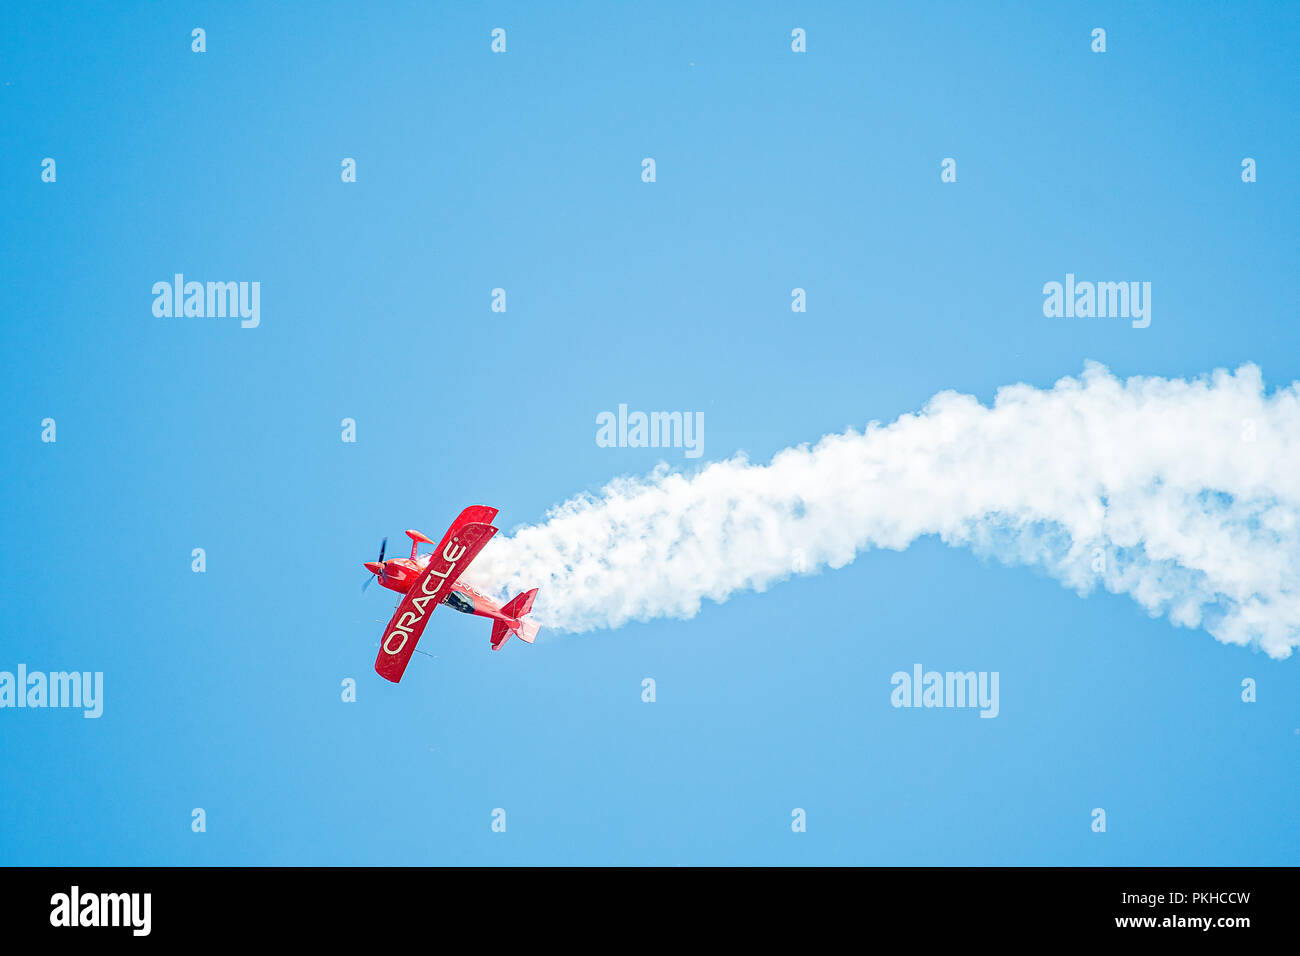 Oshkosh, WI - 28 July 2018:  A bi-plane sponsored by Oracle does stunts at an airshow - Stock Image